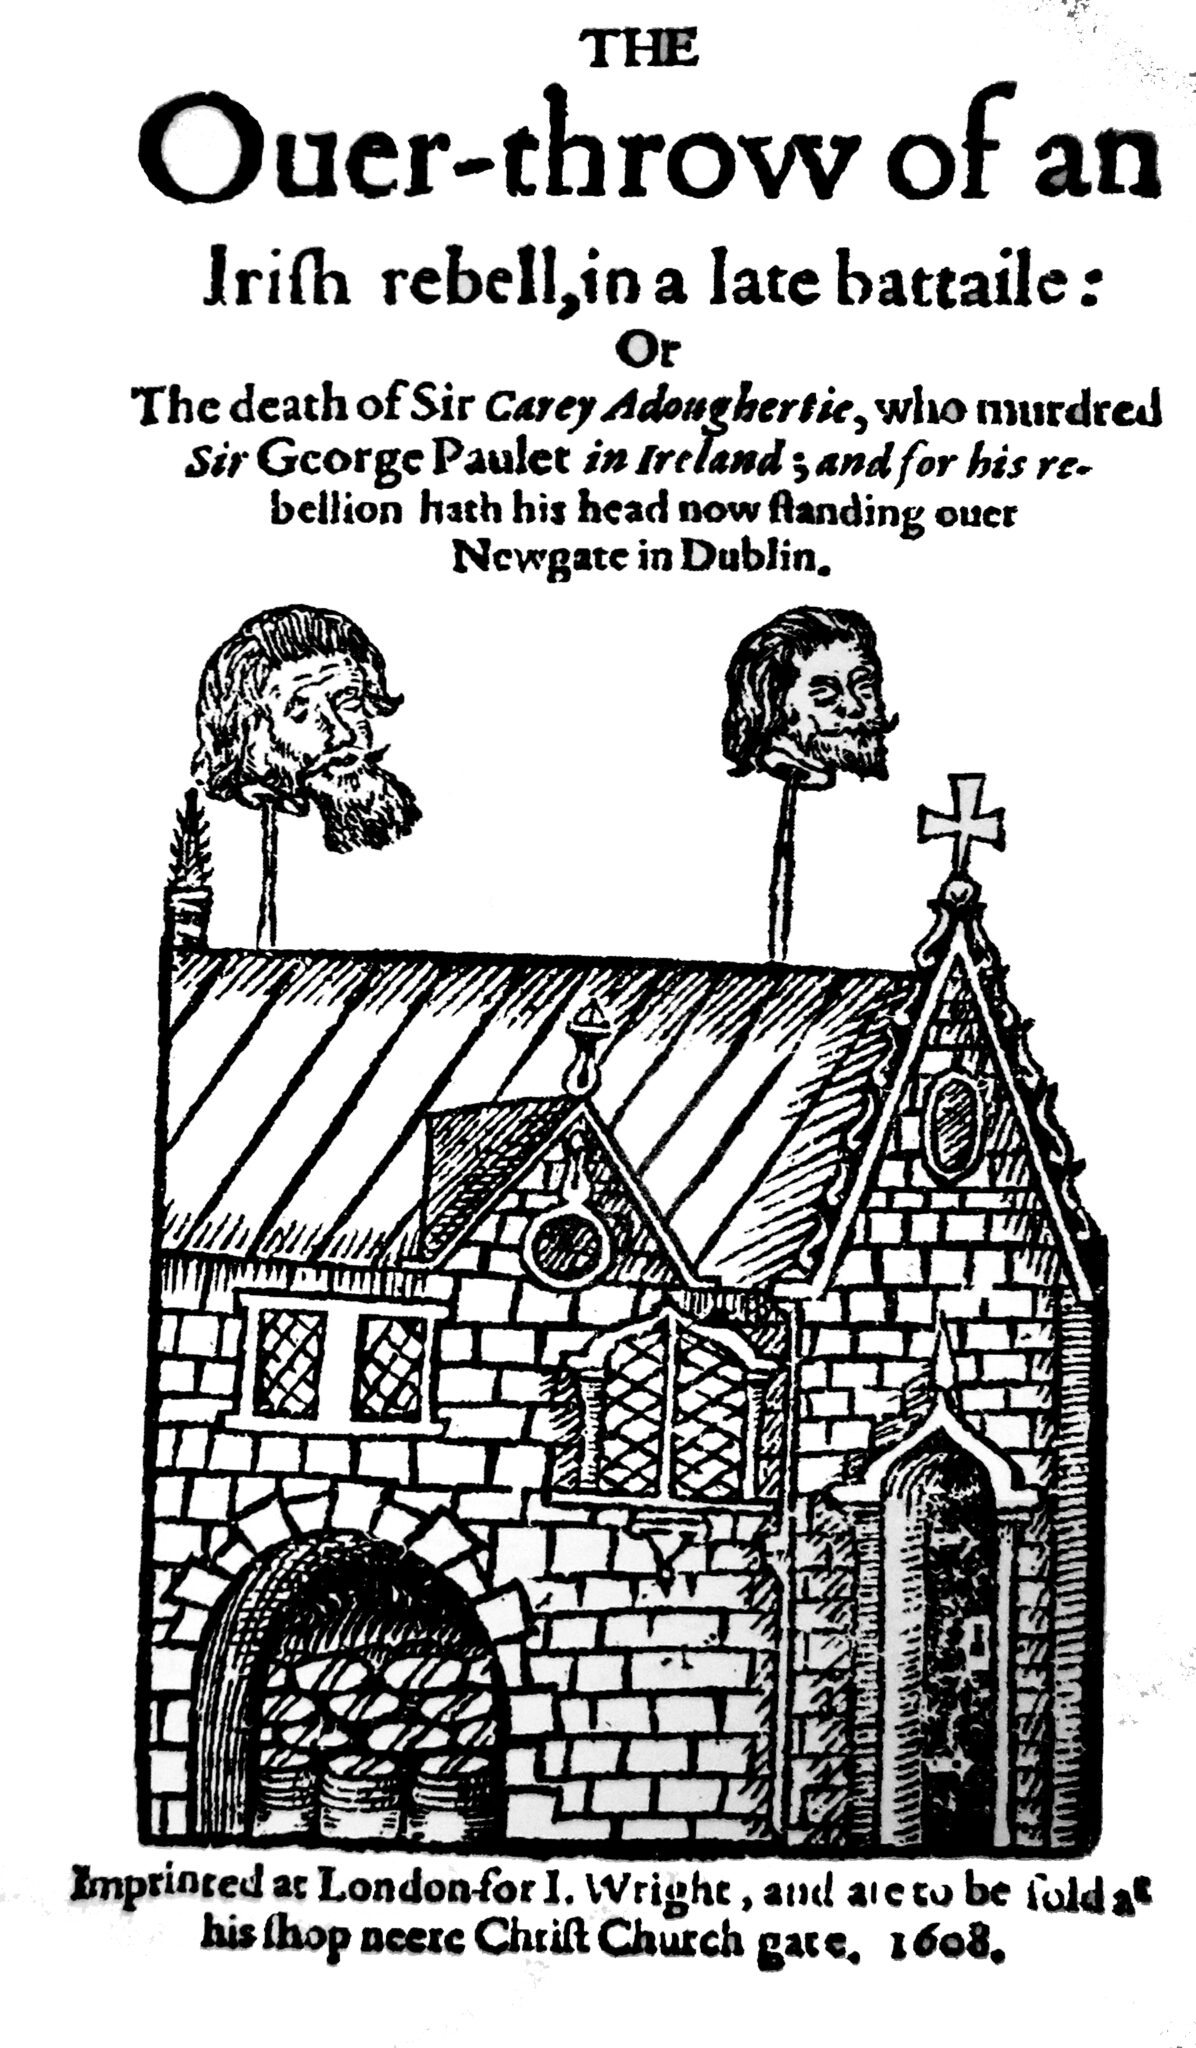 """Today in Labor History April 19, 1608: """"The Overthrow of an Irish Rebell."""""""